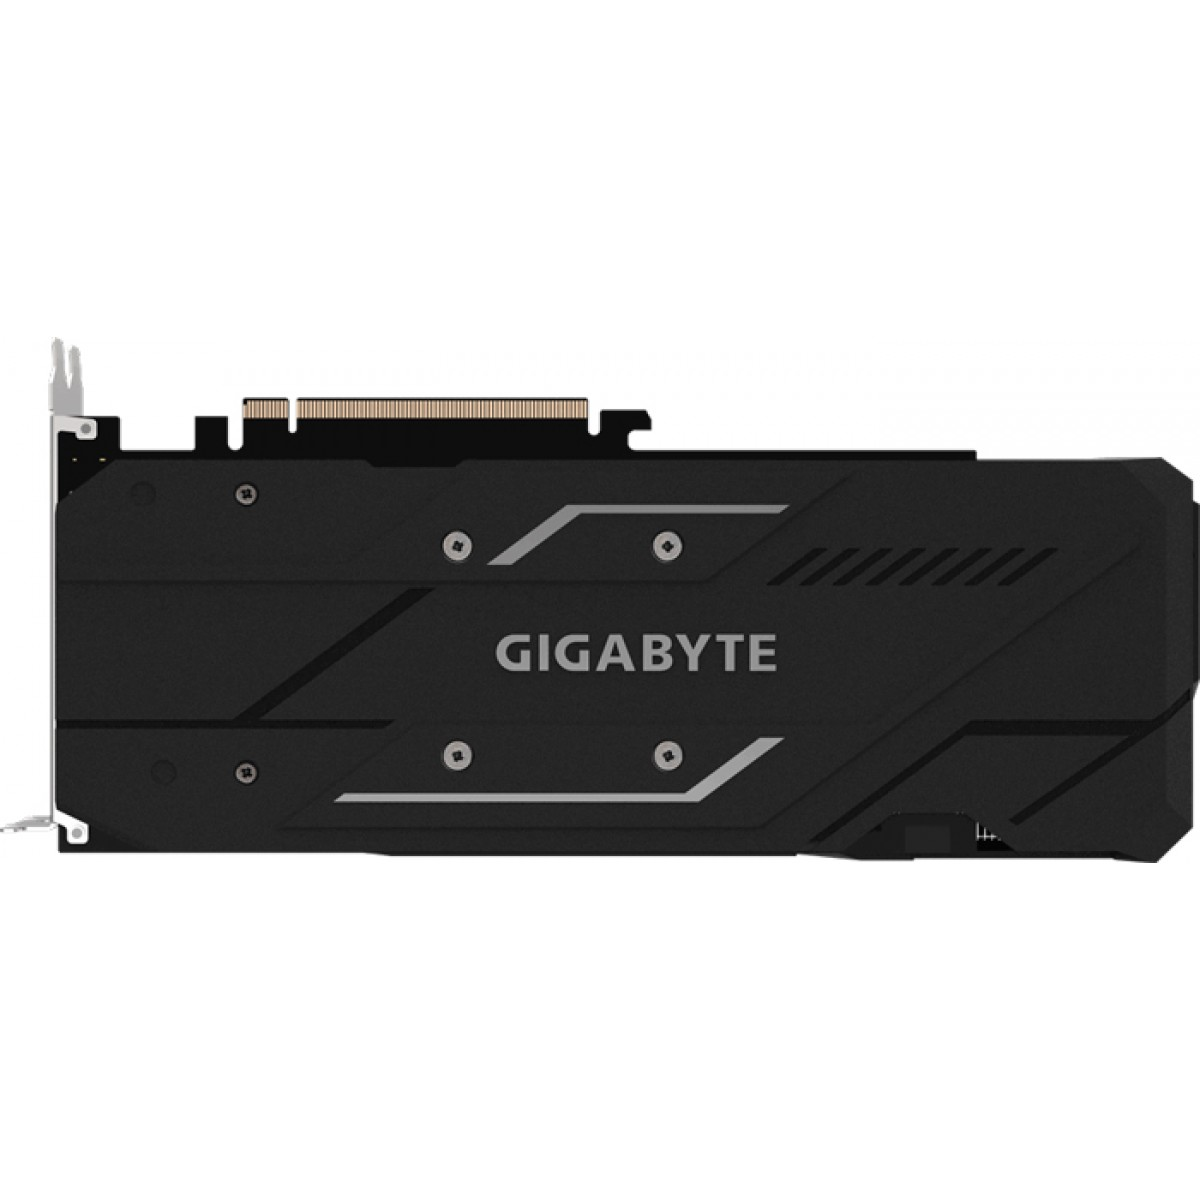 Placa de Vídeo Gigabyte GeForce GTX 1660 Gaming OC, 6GB GDDR5, 192Bit, GV-N1660GAMING OC-6GD